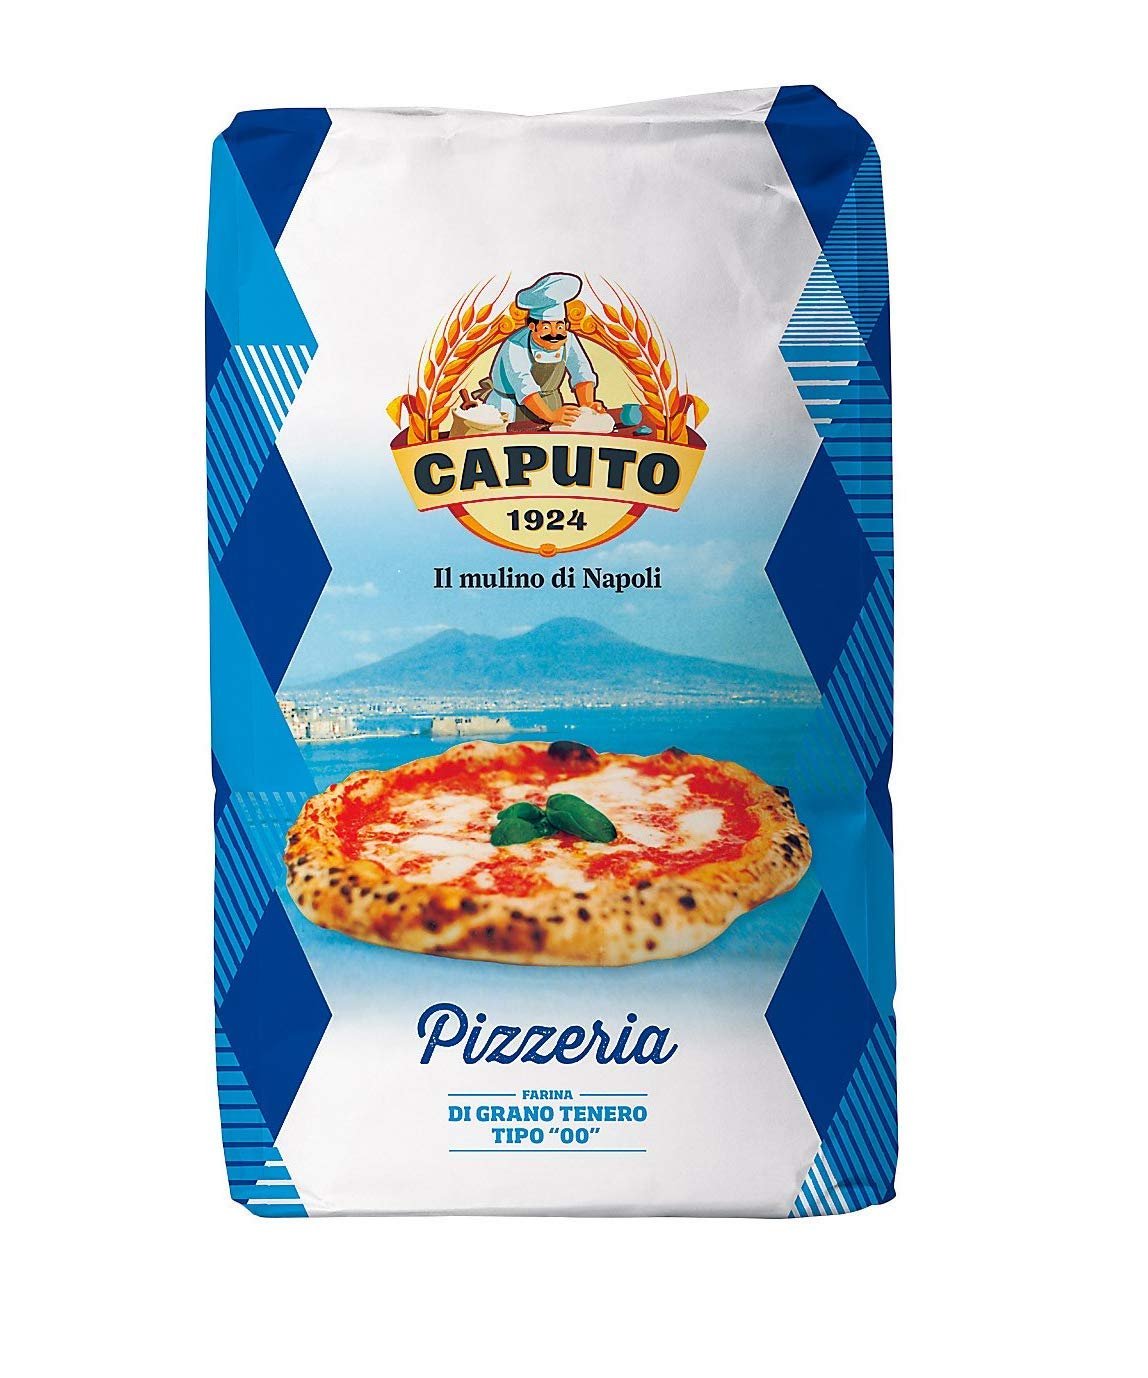 Antimo Caputo Pizzeria Flour 55 LB Blue Bulk Bag - Italian Double Zero 00 - All Natural Wheat for Authentic Pizza Dough, Bread, & Pasta by Antimo Caputo